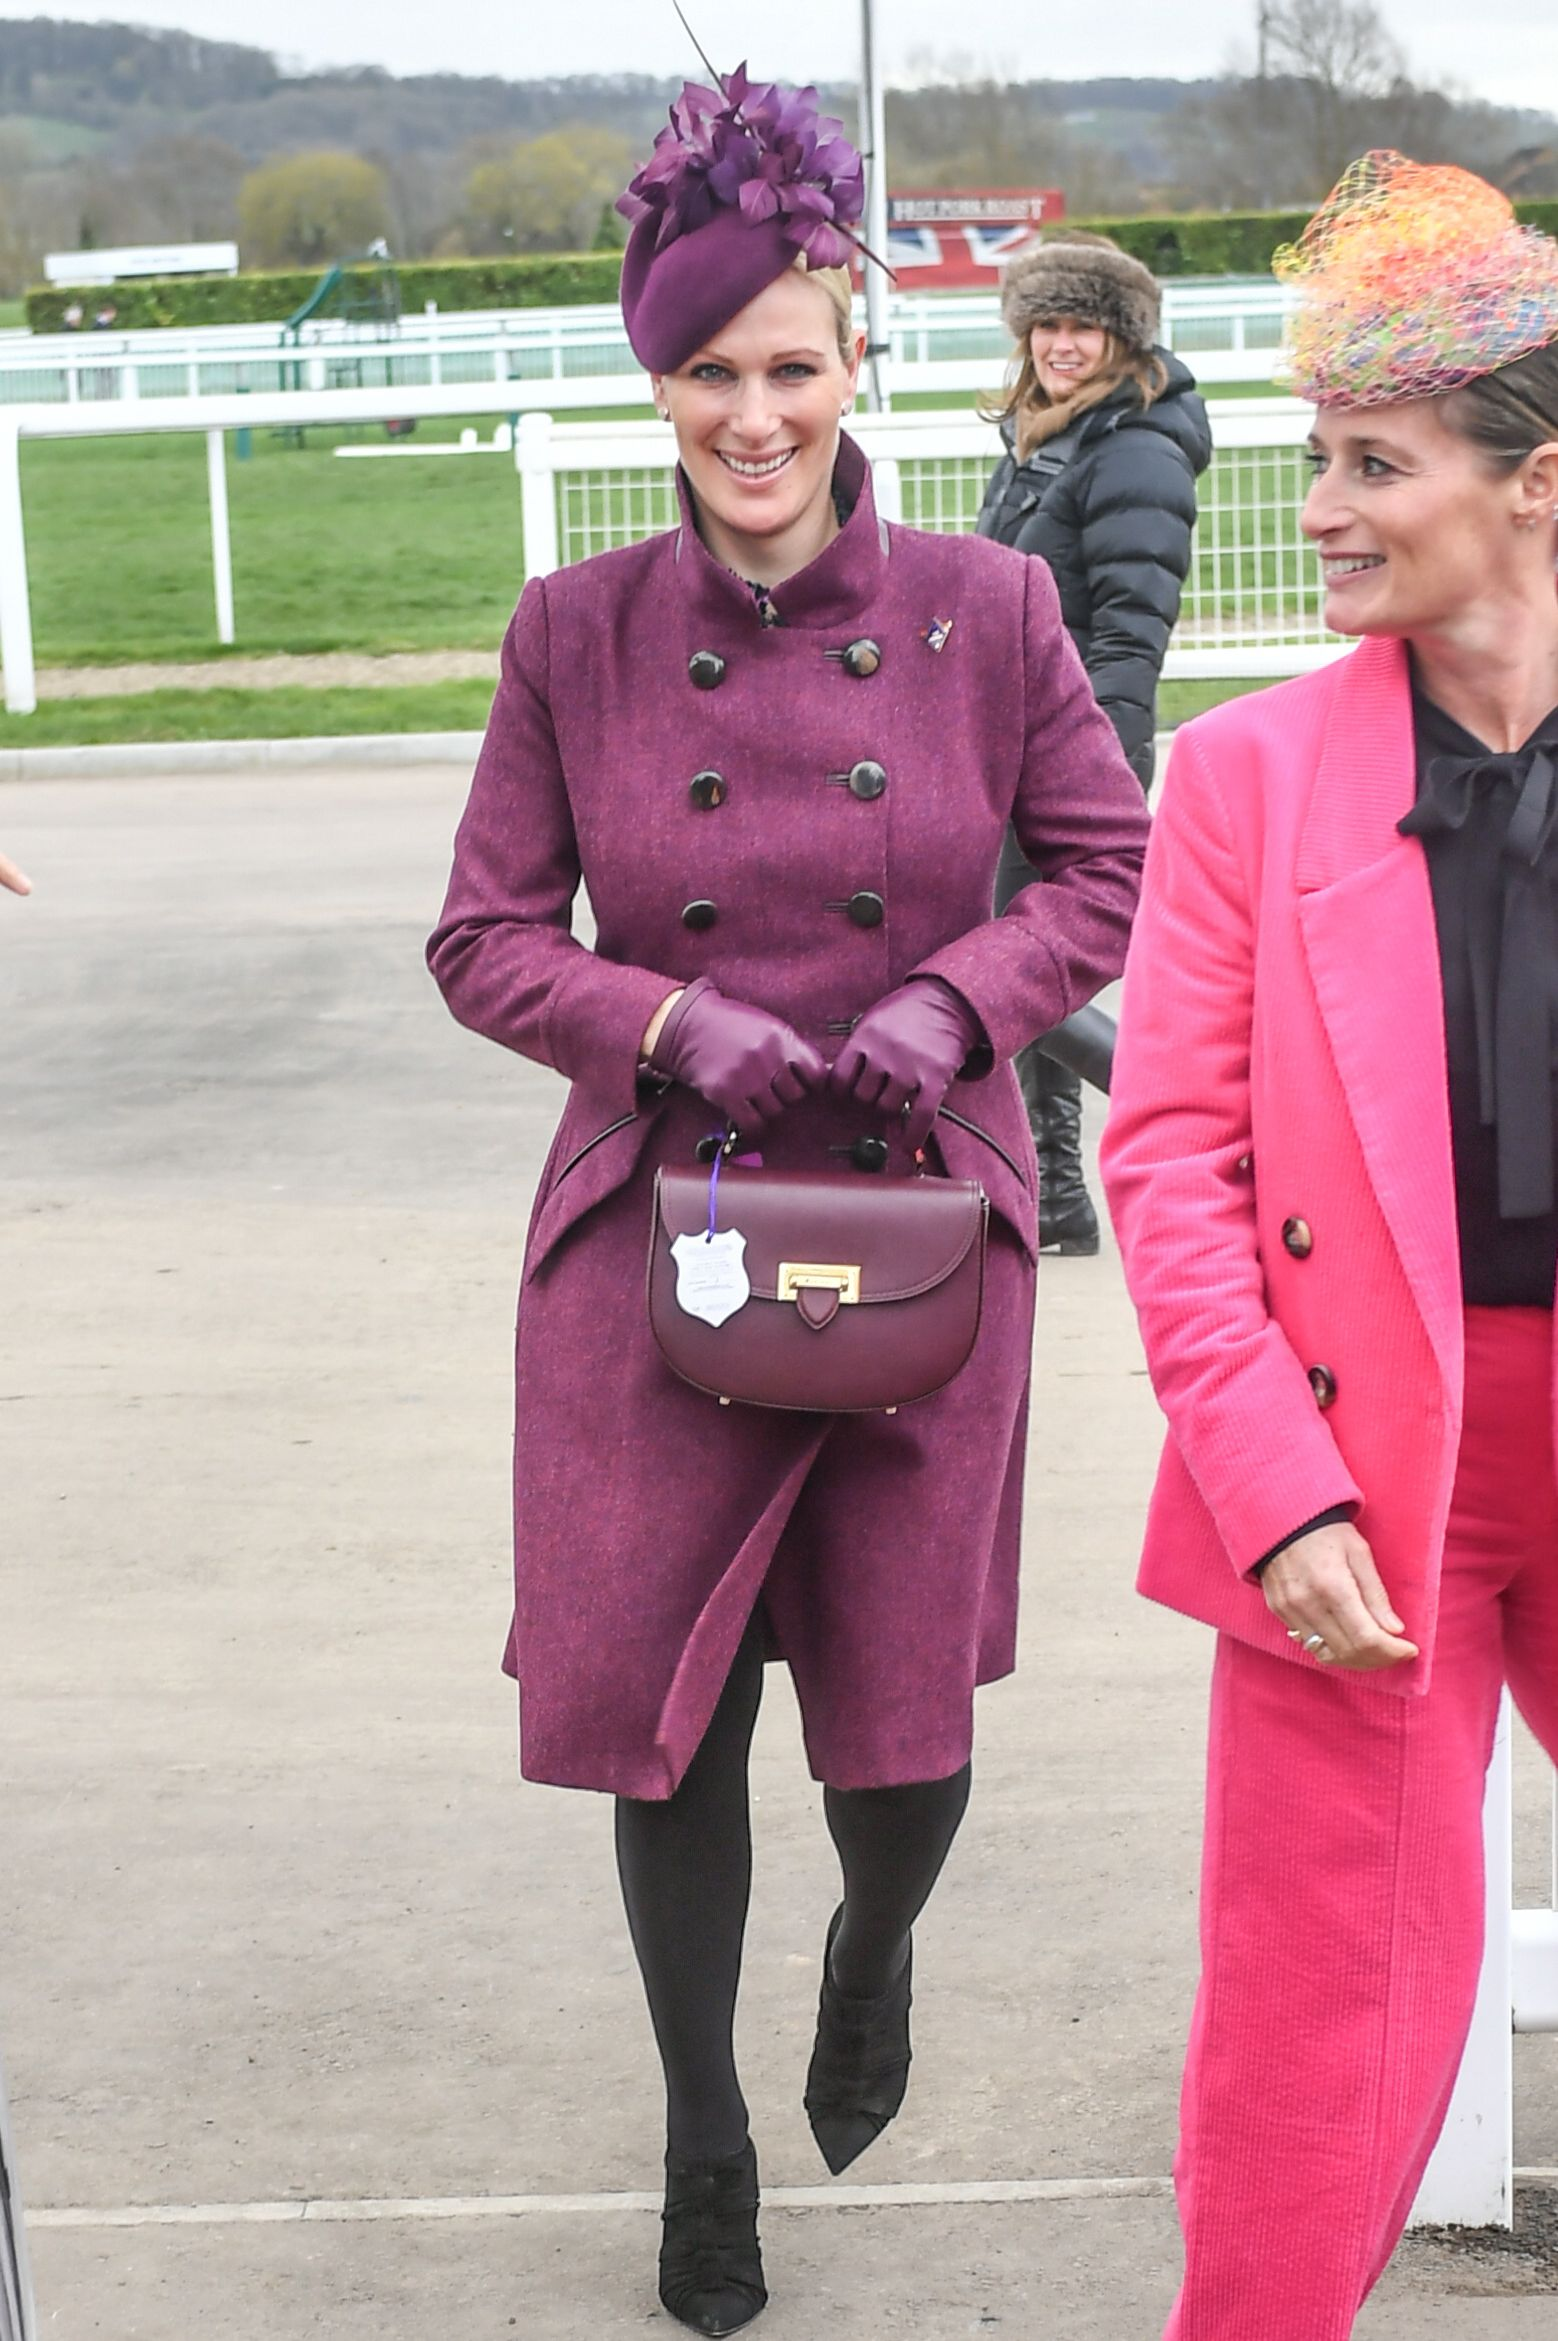 For day 2 of the Cheltenham races, Zara matched her eggplant cocktail hat to a bespoke coat by Pip Howeson and an Aspinal of London saddlebag. Shop Now Letterbox Saddle Bag, Aspinal of London, $650